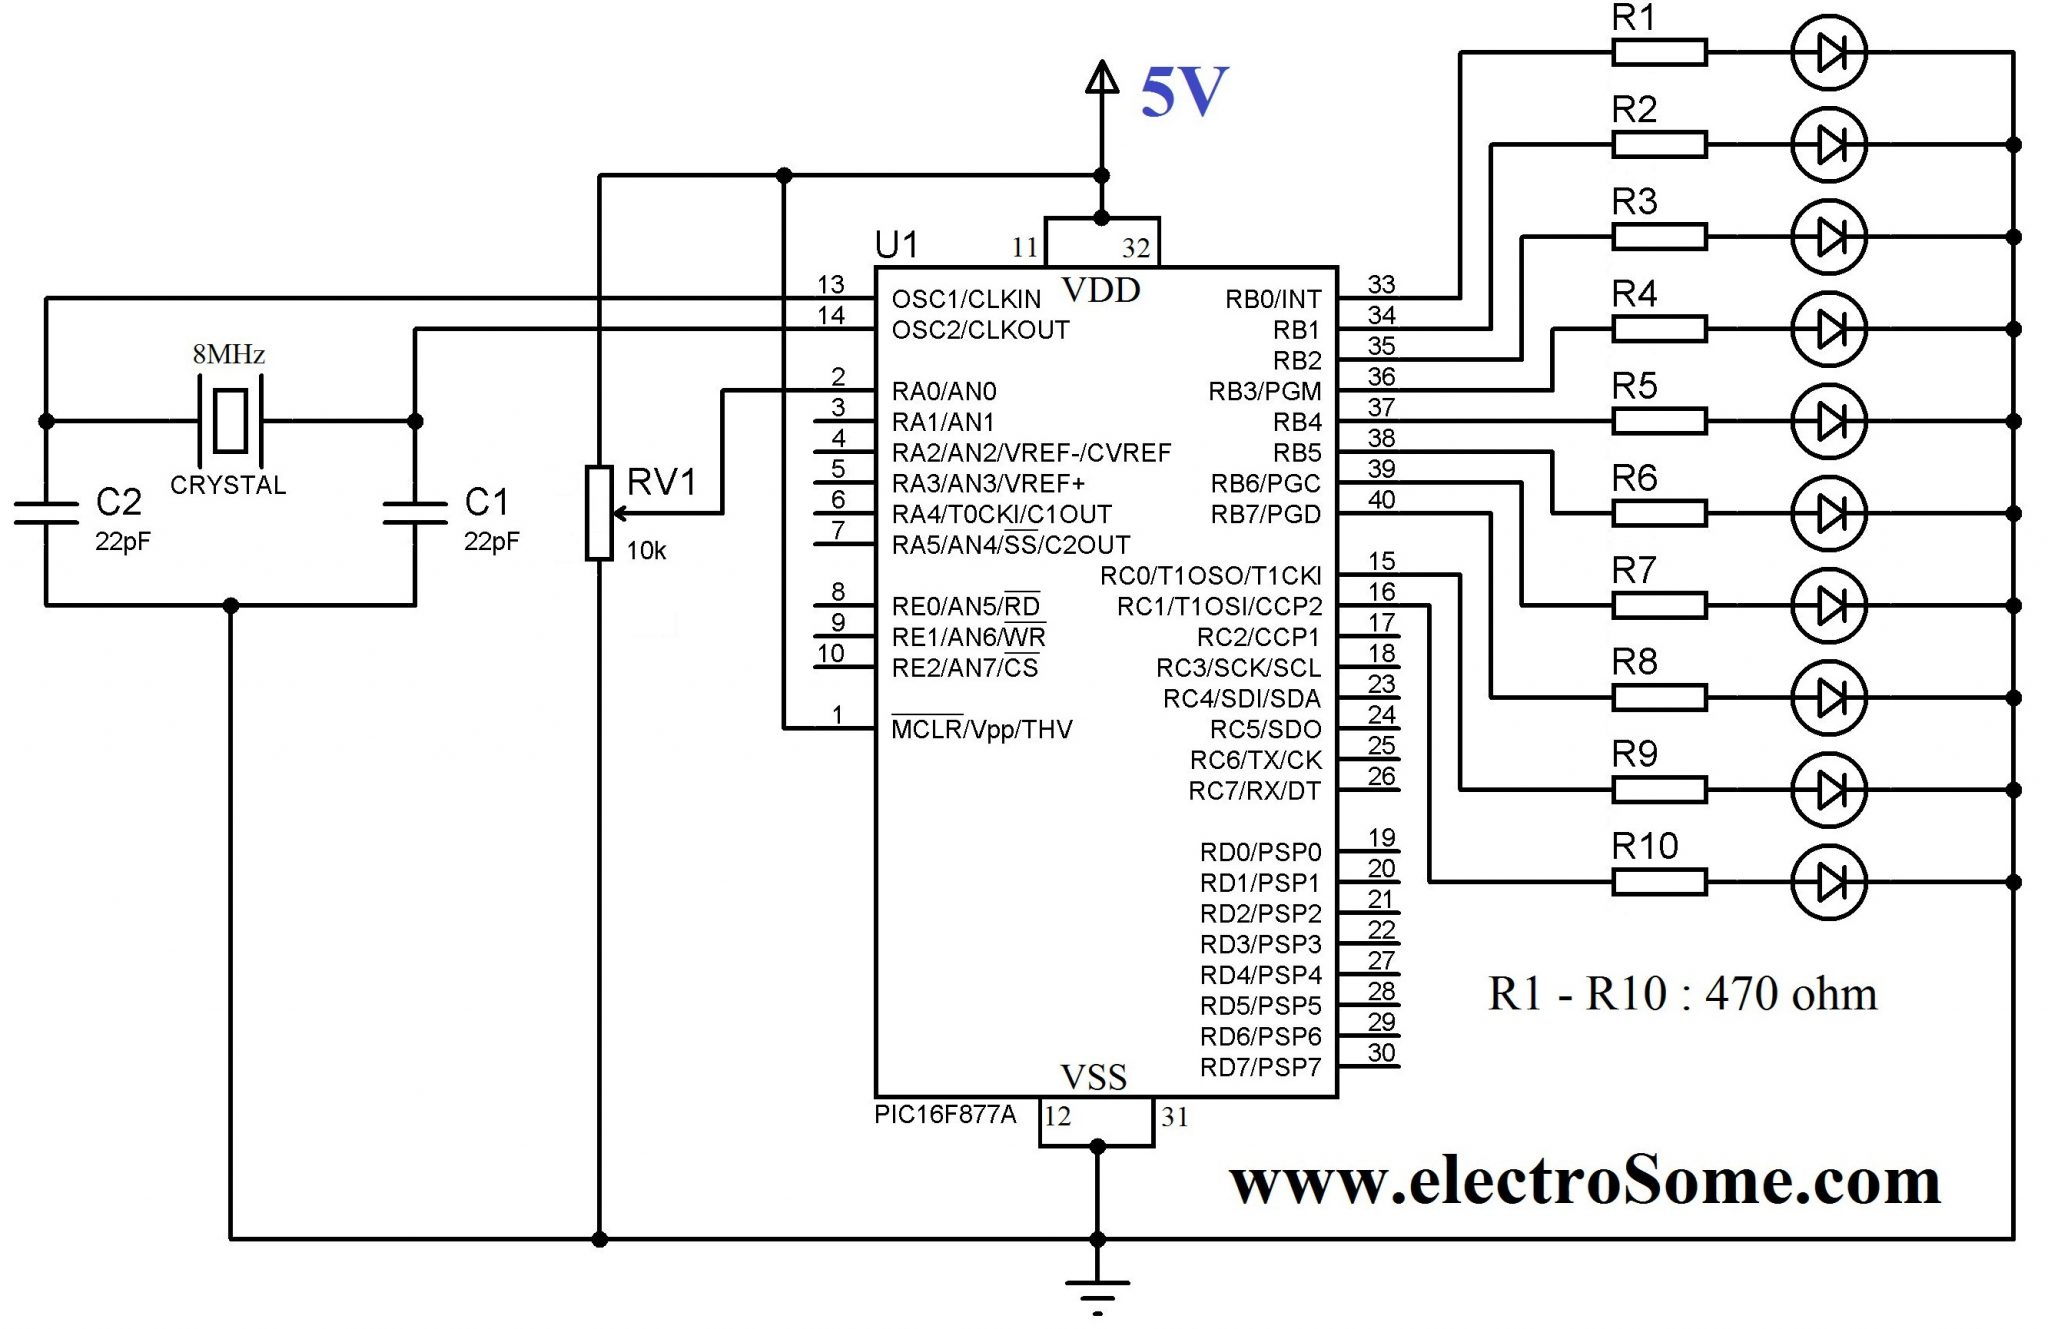 Digital Potentiometer Schematic Auto Electrical Wiring Diagram Circuits Gt Plc Circuit L31001 Nextgr Using Adc Module Of Pic Microcontroller